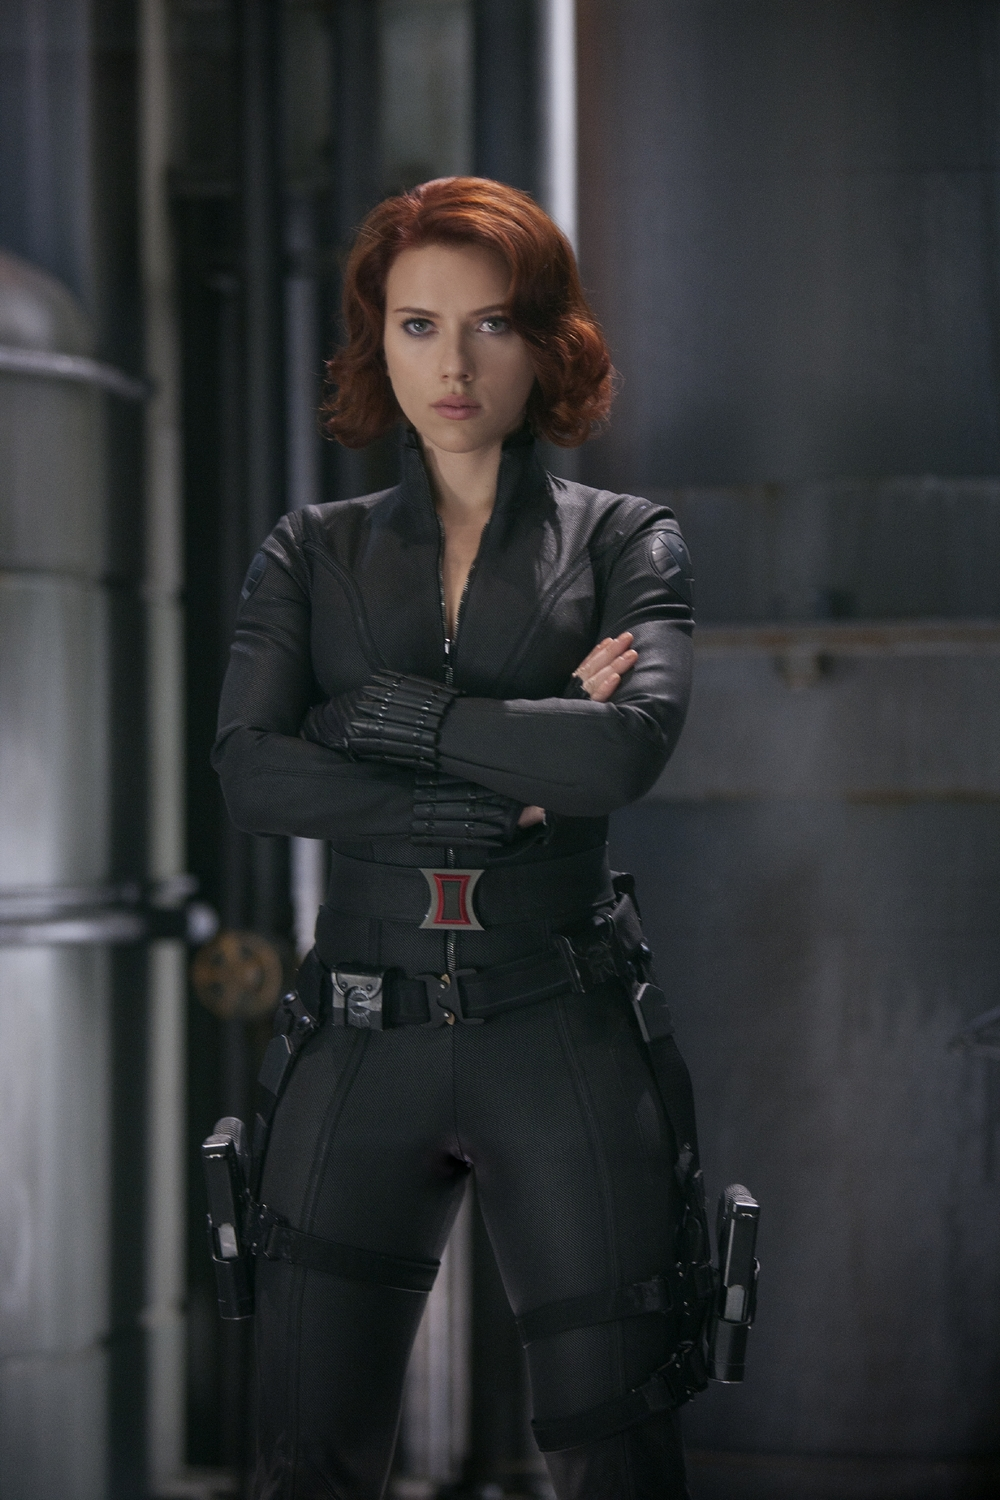 Marvels_The_Avengers_black_widow.jpg